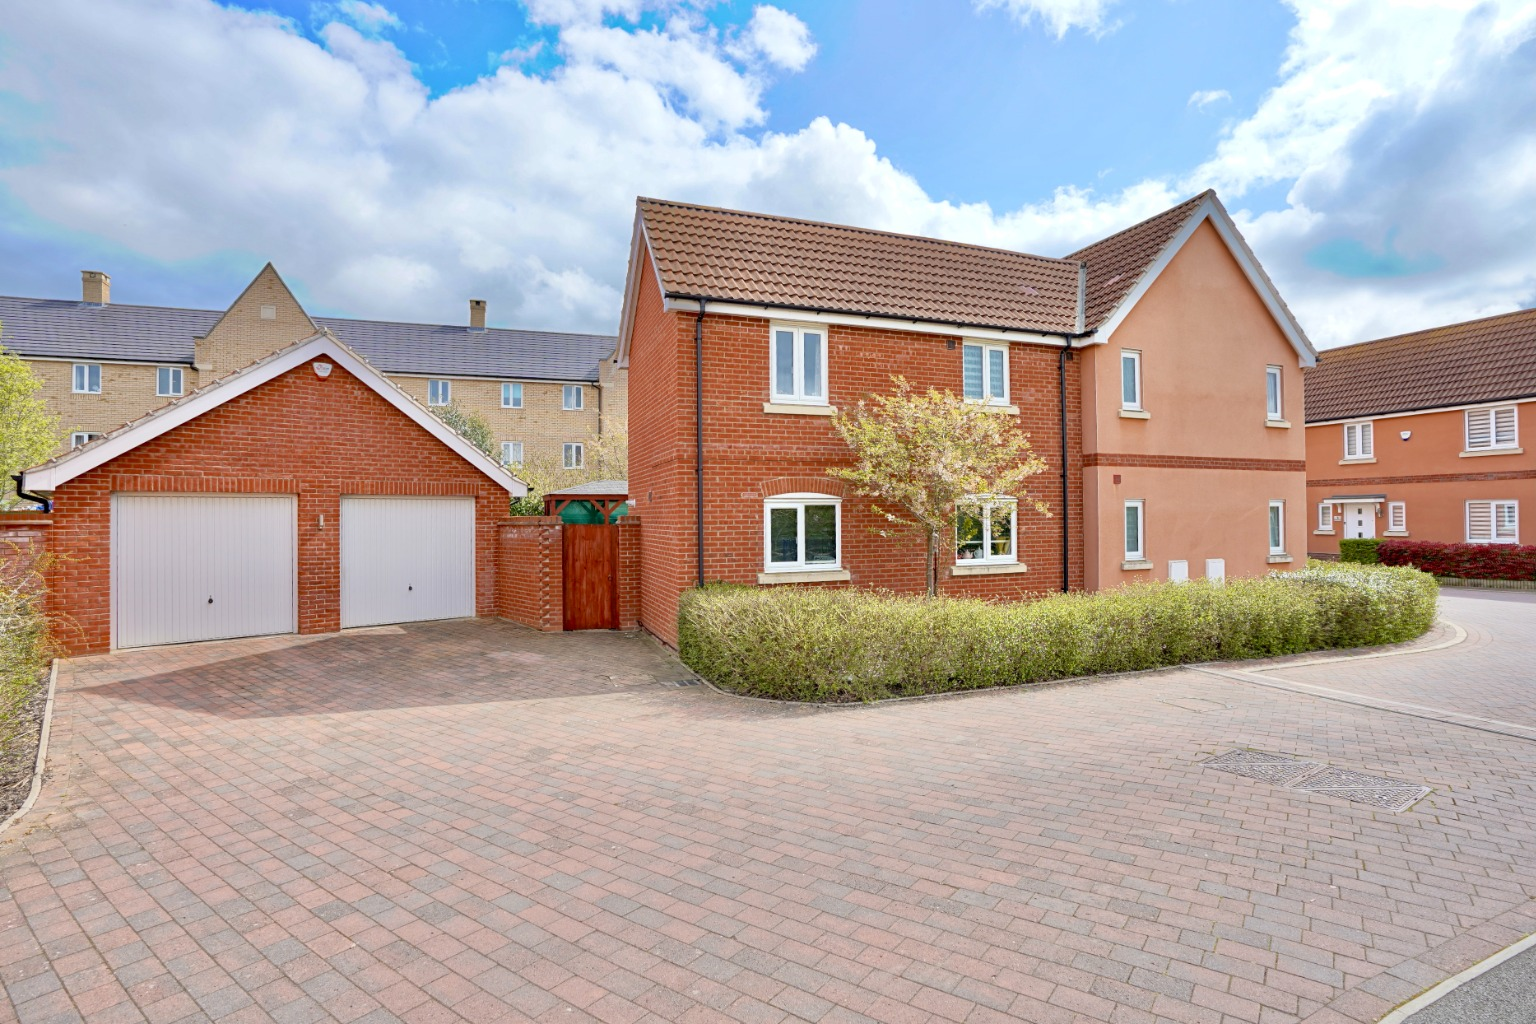 4 bed detached house for sale in Daffodil Close, St. Neots  - Property Image 1